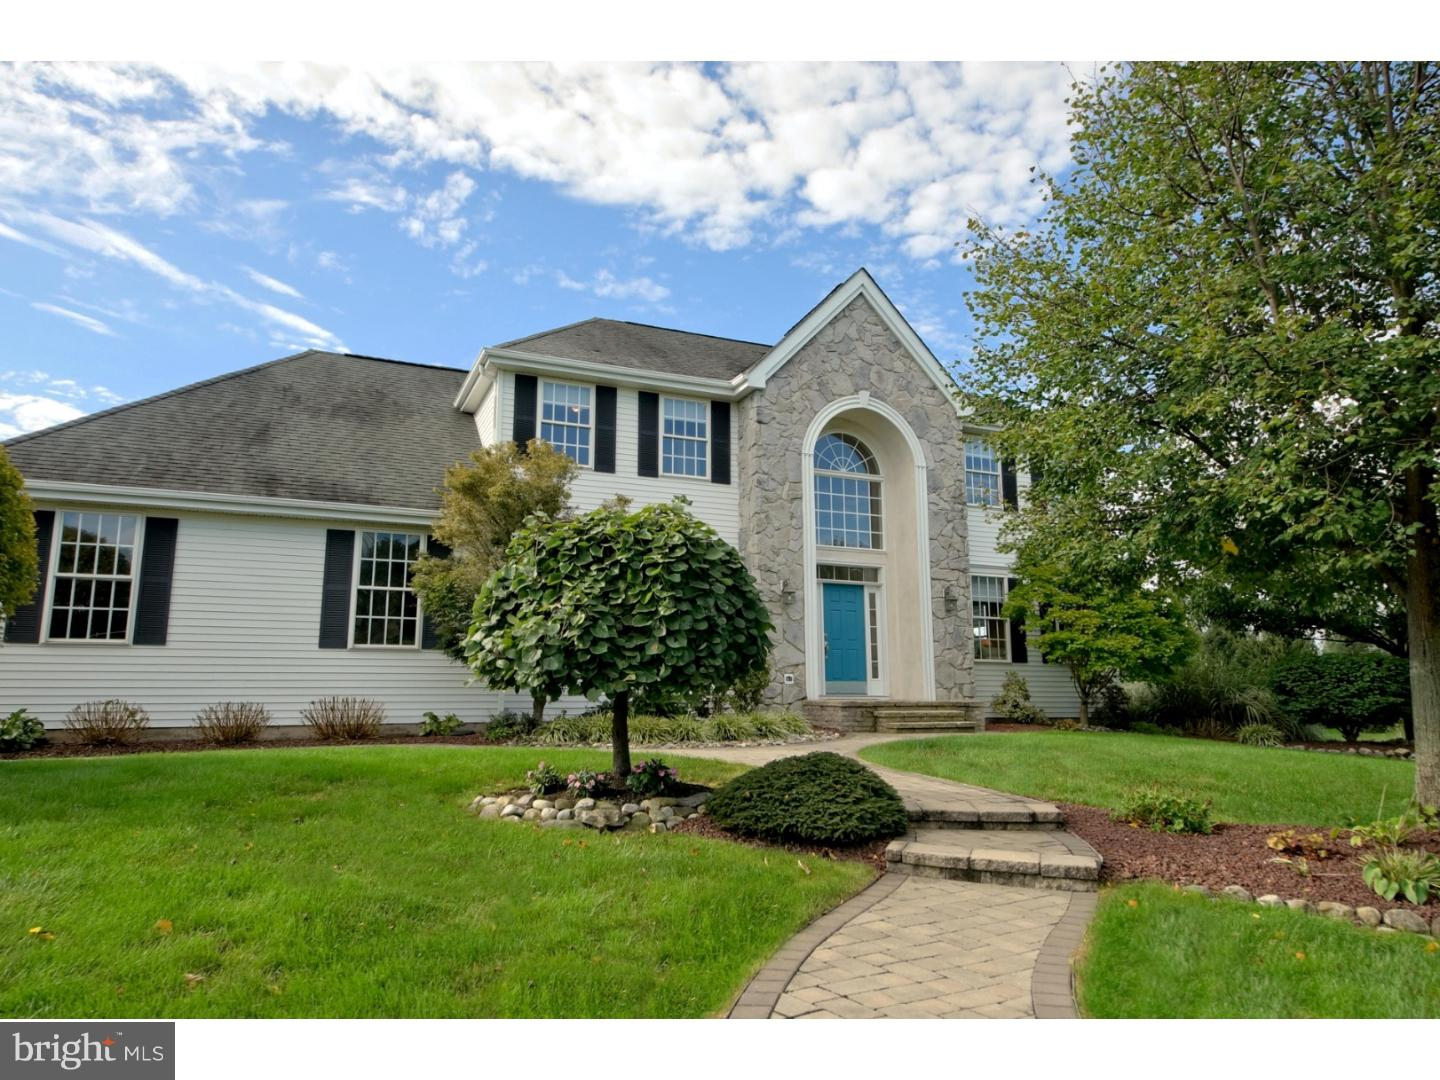 4 HICKORY COURT, PLAINSBORO, NJ 08512